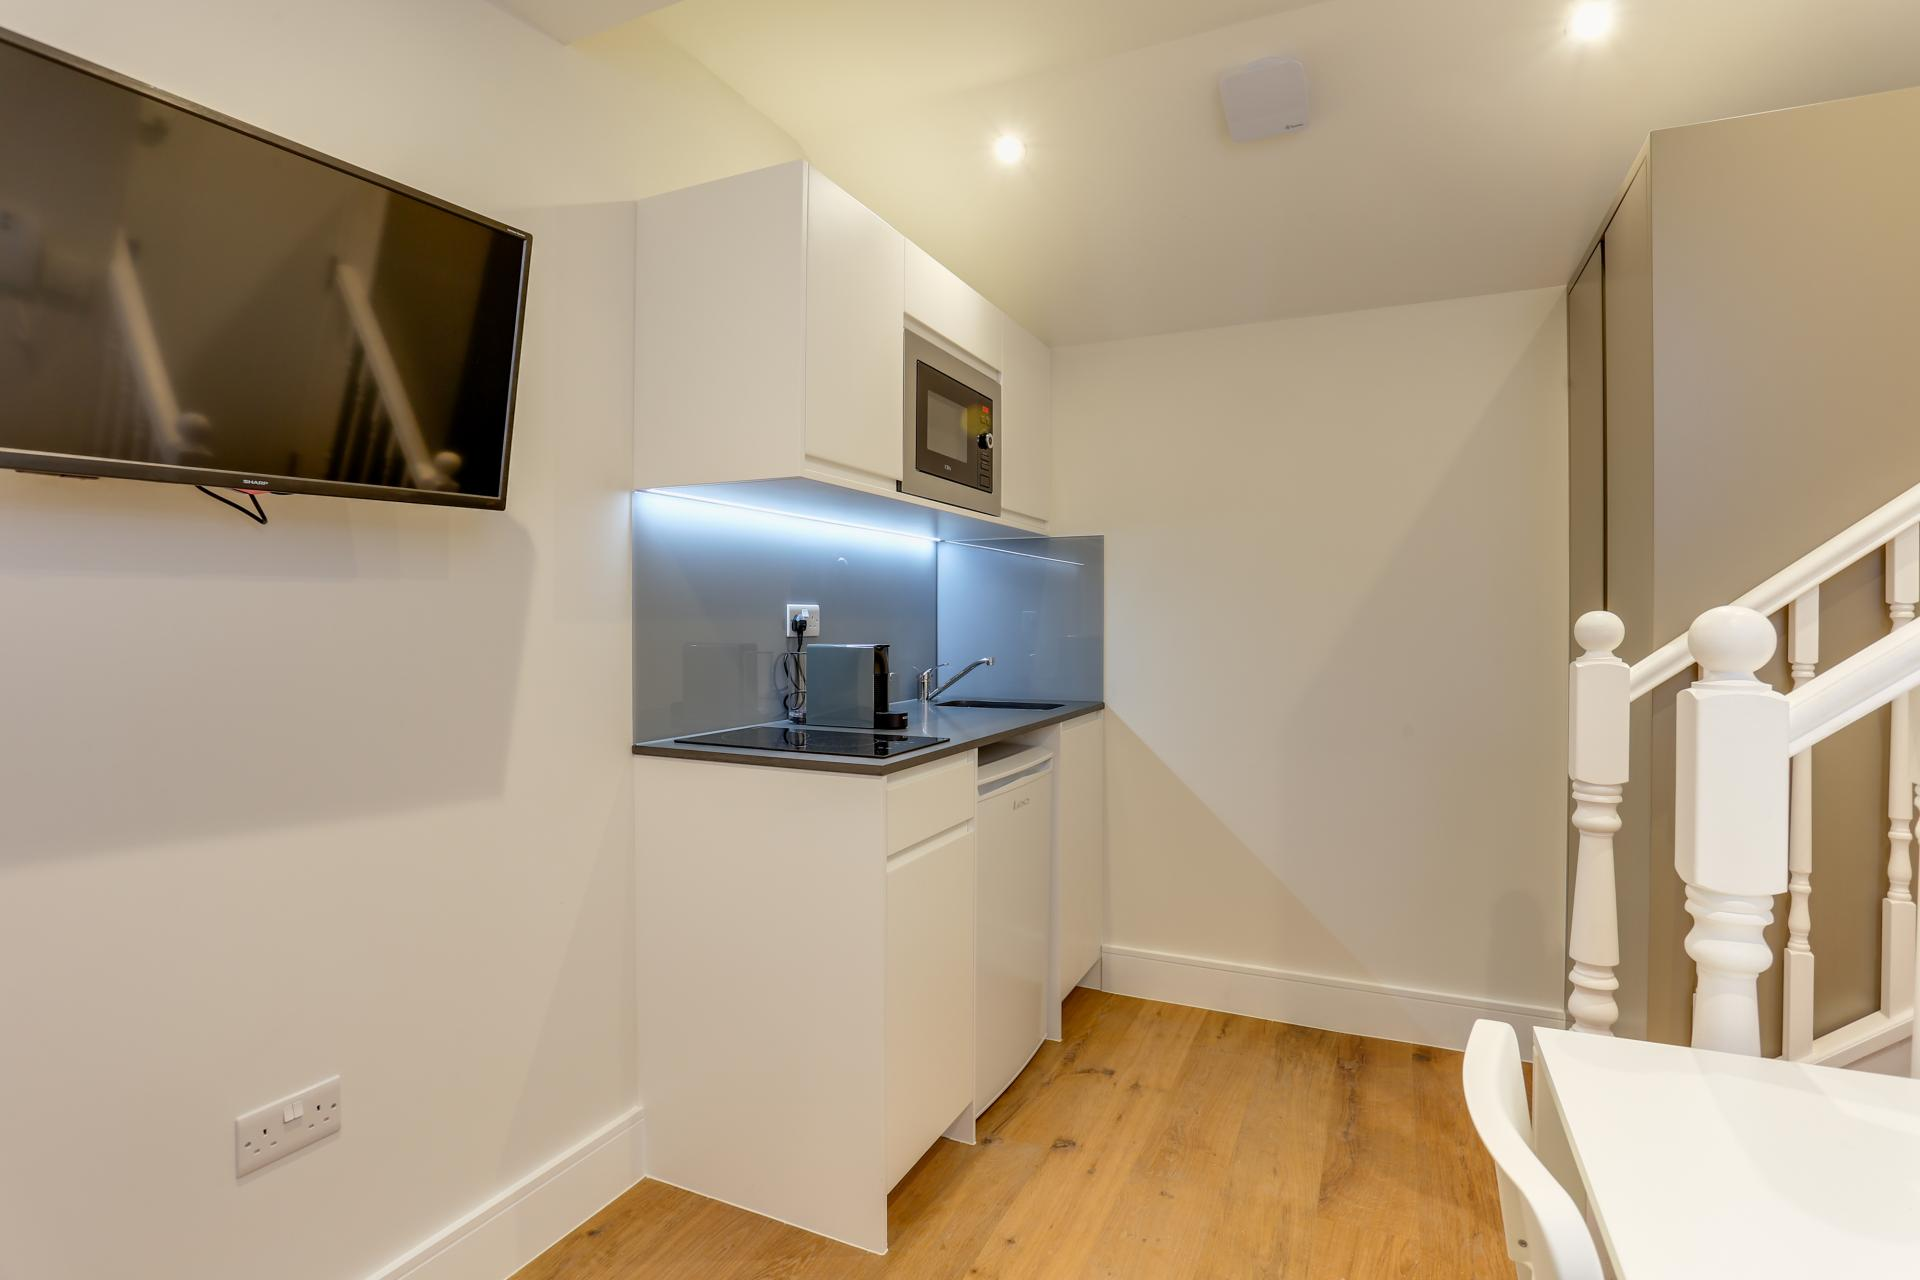 TV at Queensborough Terrace, Bayswater, London - Citybase Apartments